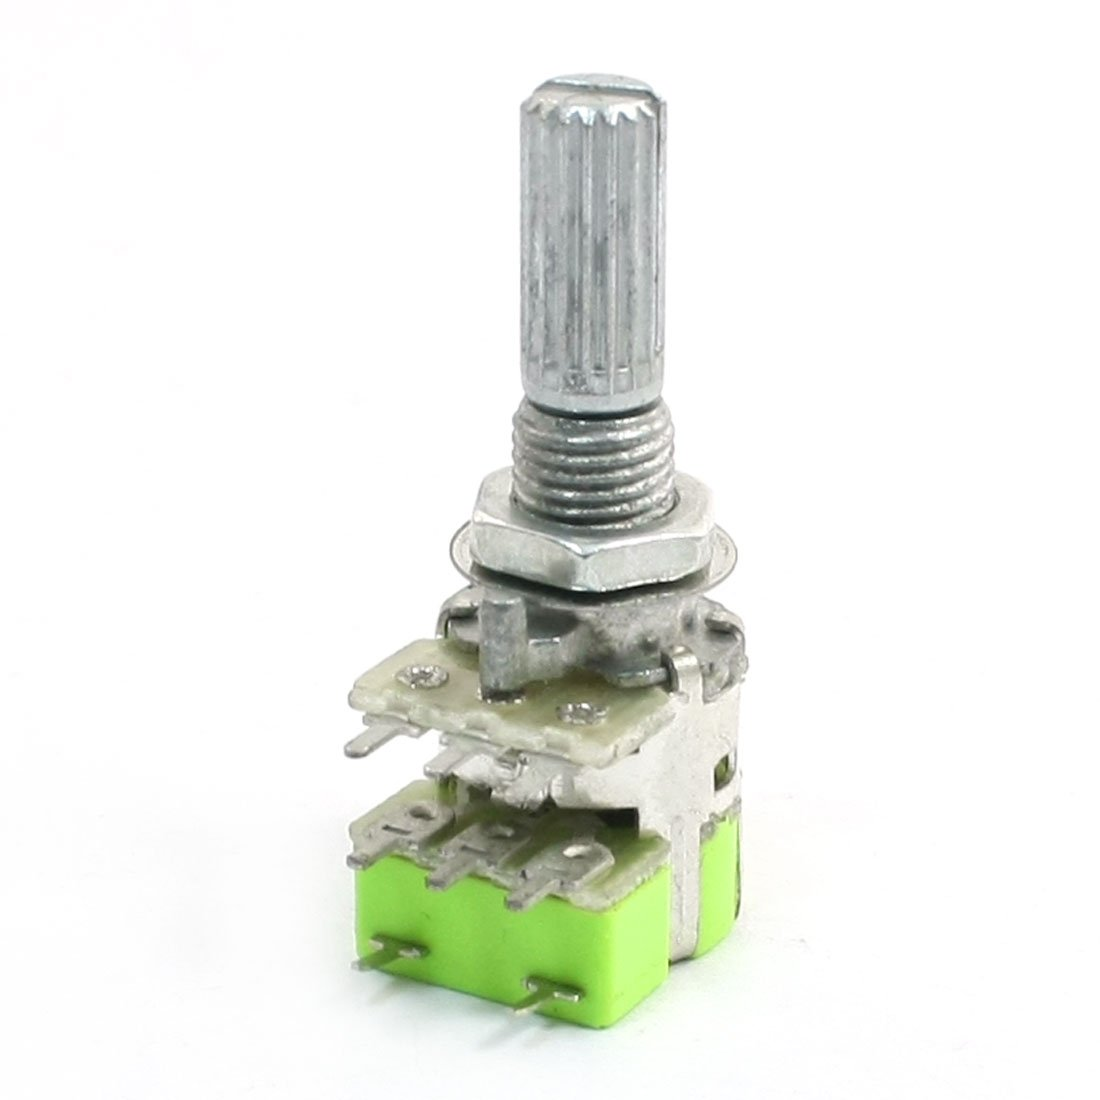 Stereo B503 50K Ohm Dual Linear Taper Volume Control Potentiometer Switch:  Amazon.com: Industrial & Scientific